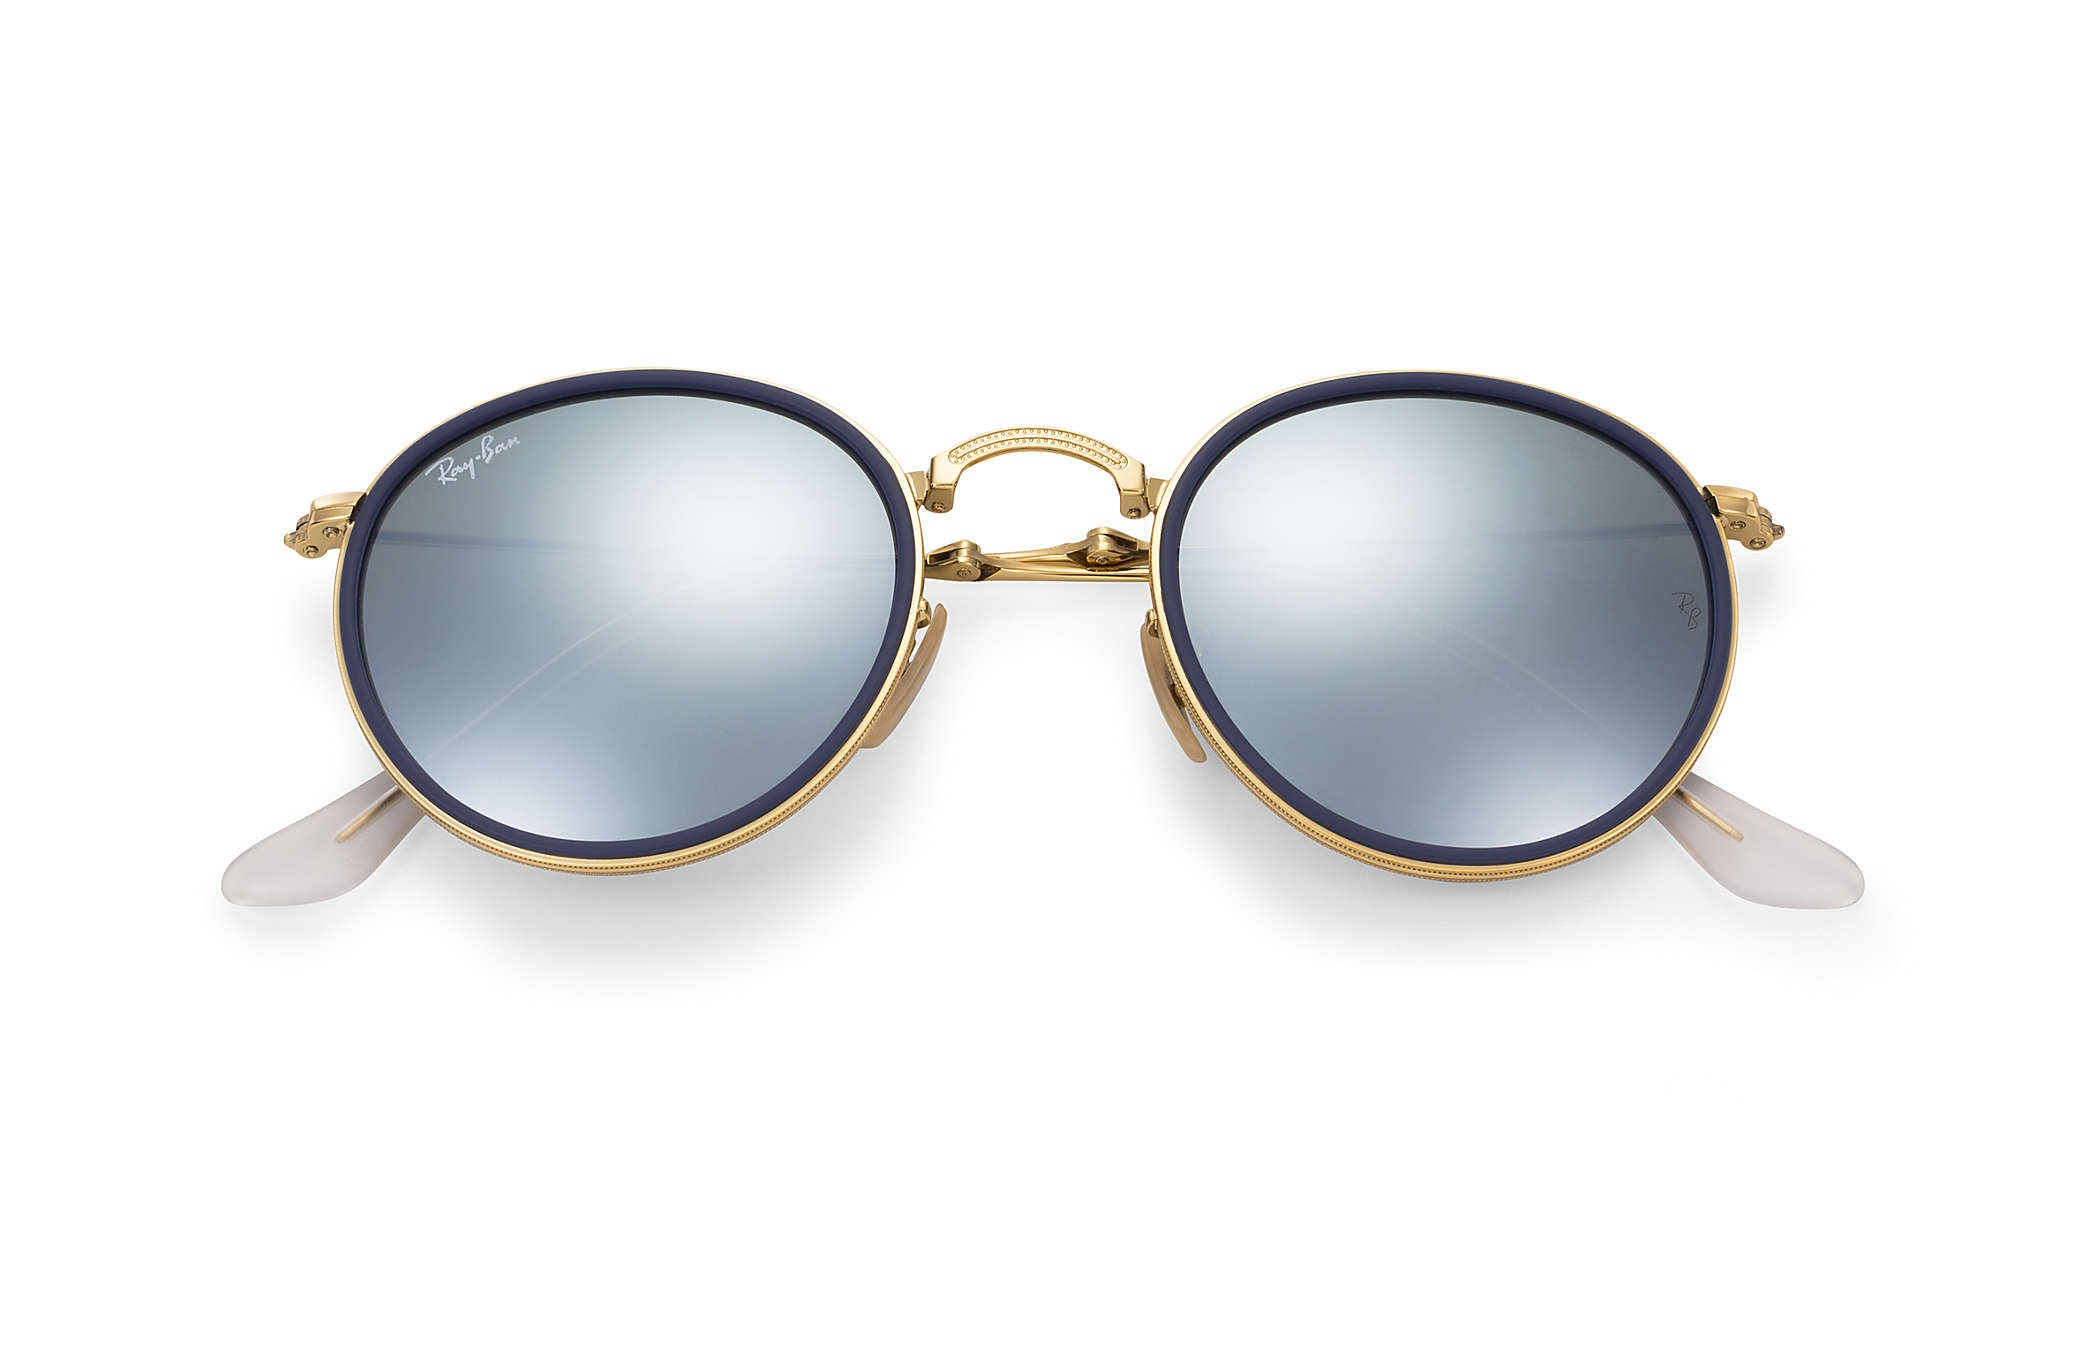 ROUND FOLDING I SUNGLASSES GOLD - SILVER FLASH